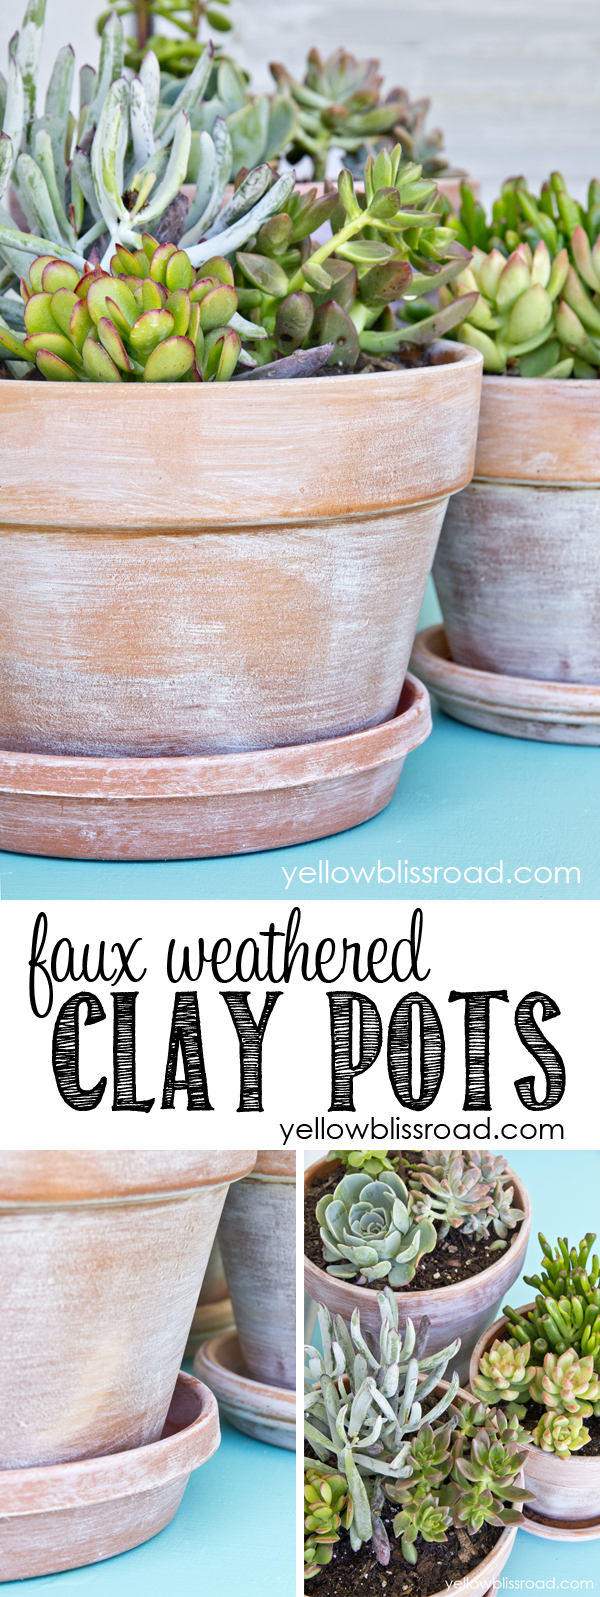 How to Create a Faux Weathered Look for Clay / Terra Cotta Pots (works on plastic too!)